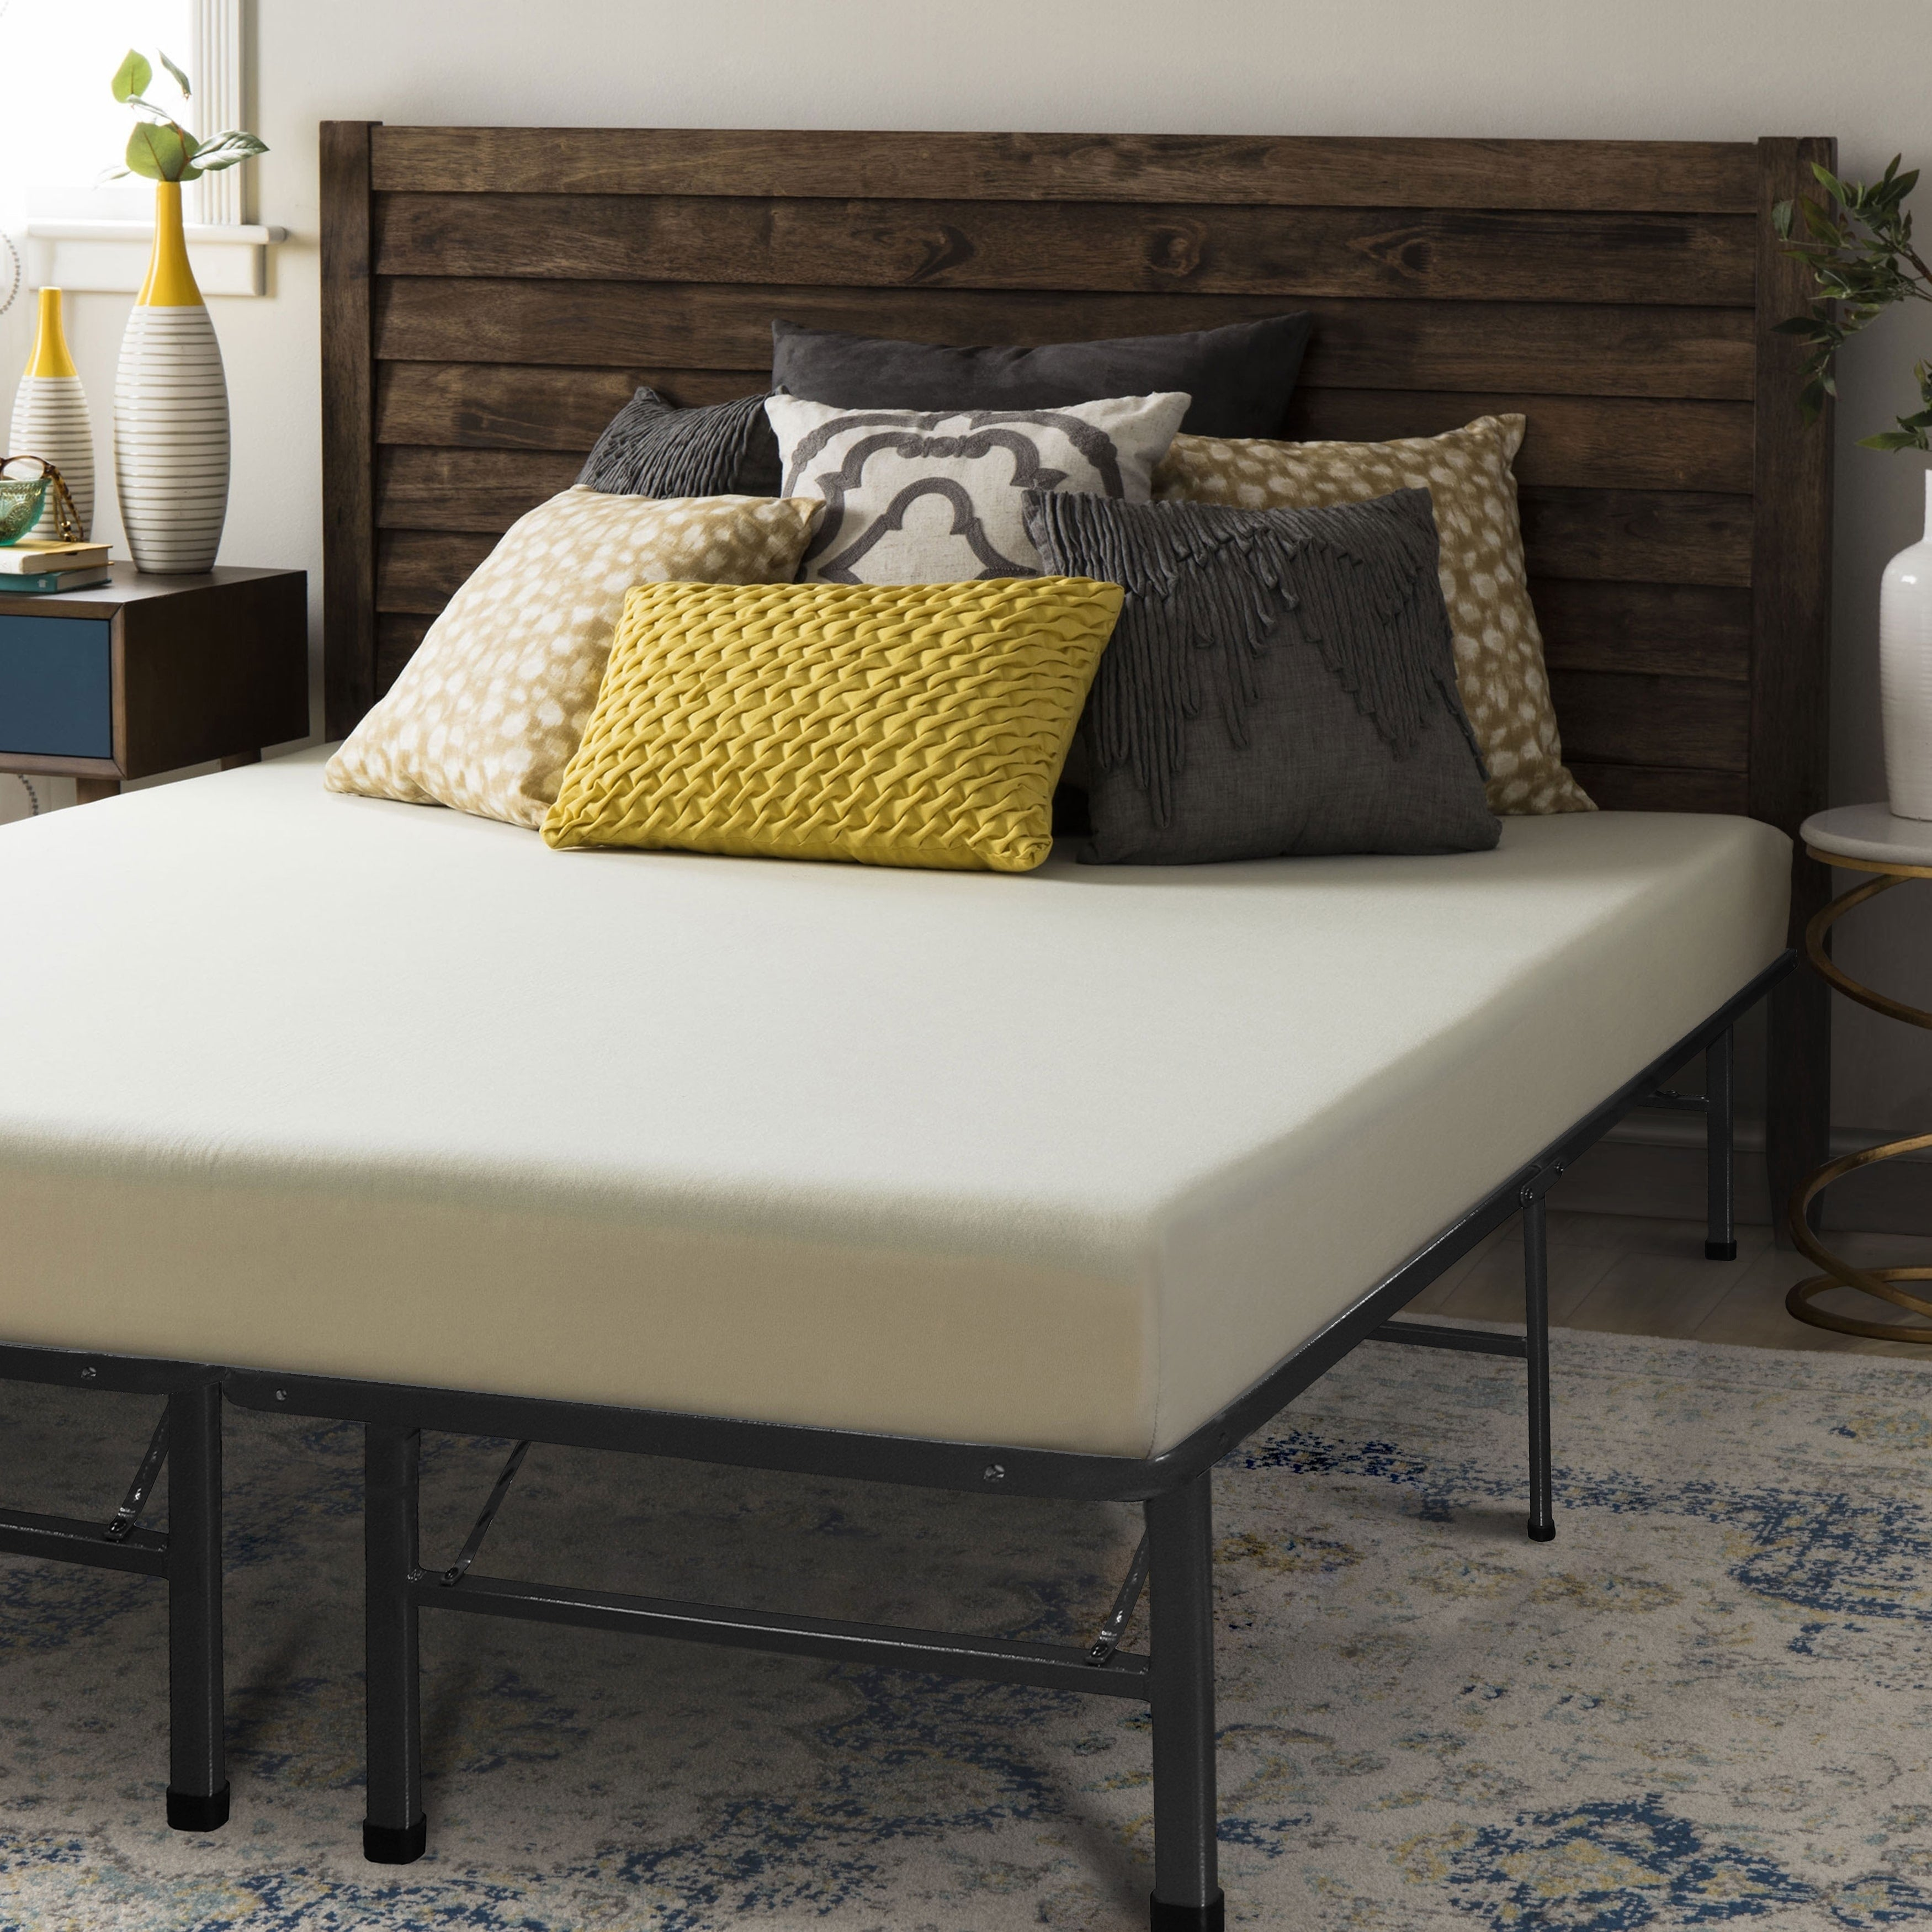 Crown Comfort 6-inch Queen-size Bed Frame and Memory Foam...